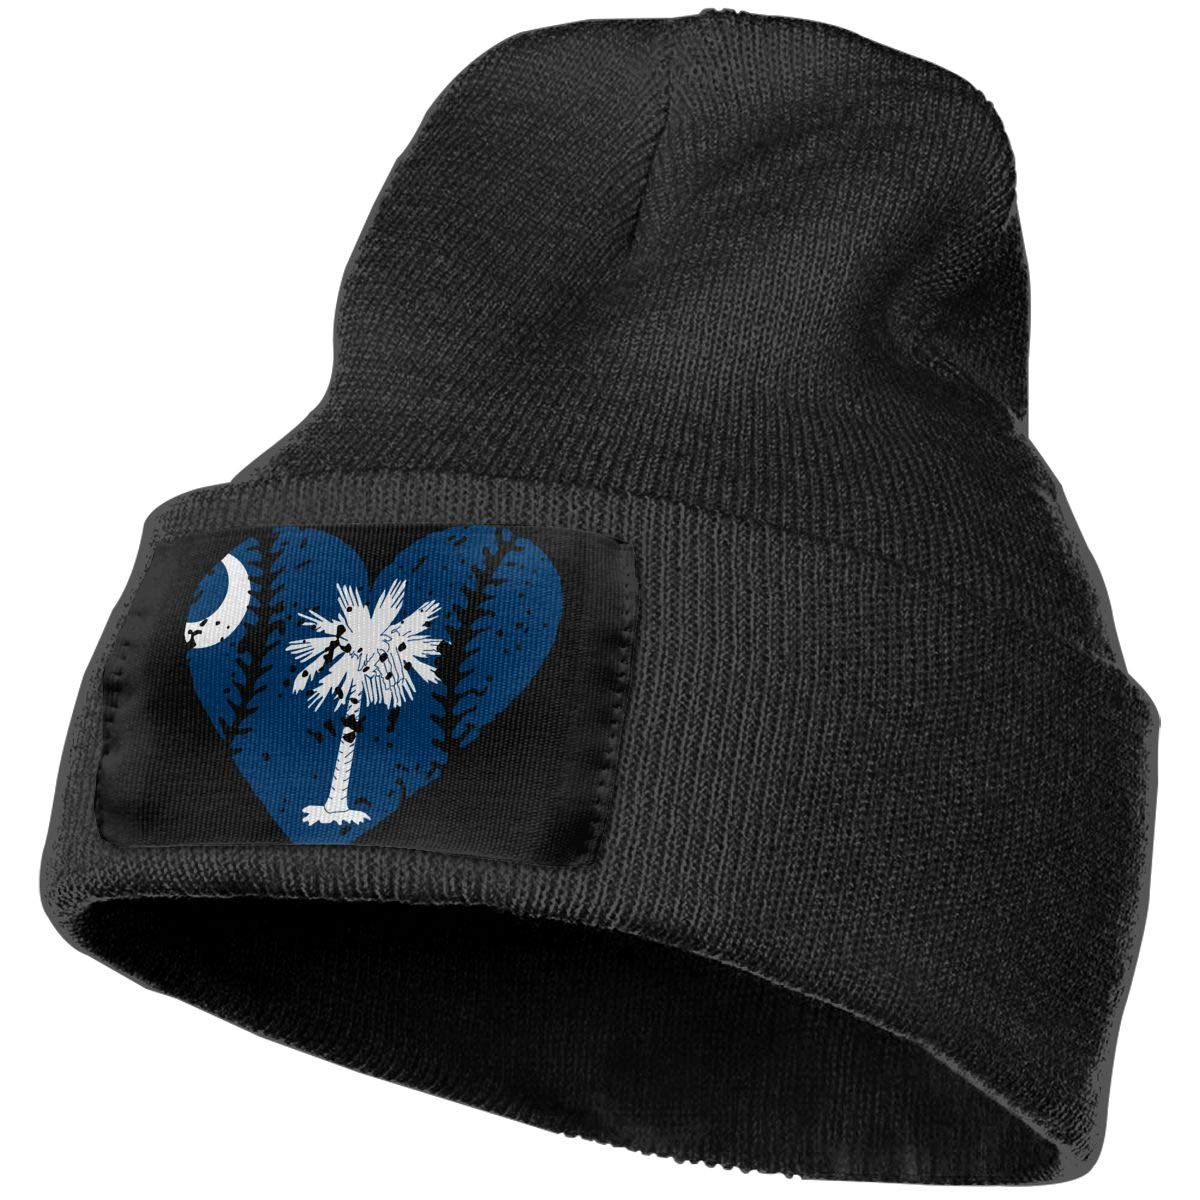 Stretchy /& Soft Winter Ski Skull Caps Baseball Heart South Carolina Flag Unisex Solid Color Knit Beanie Hat